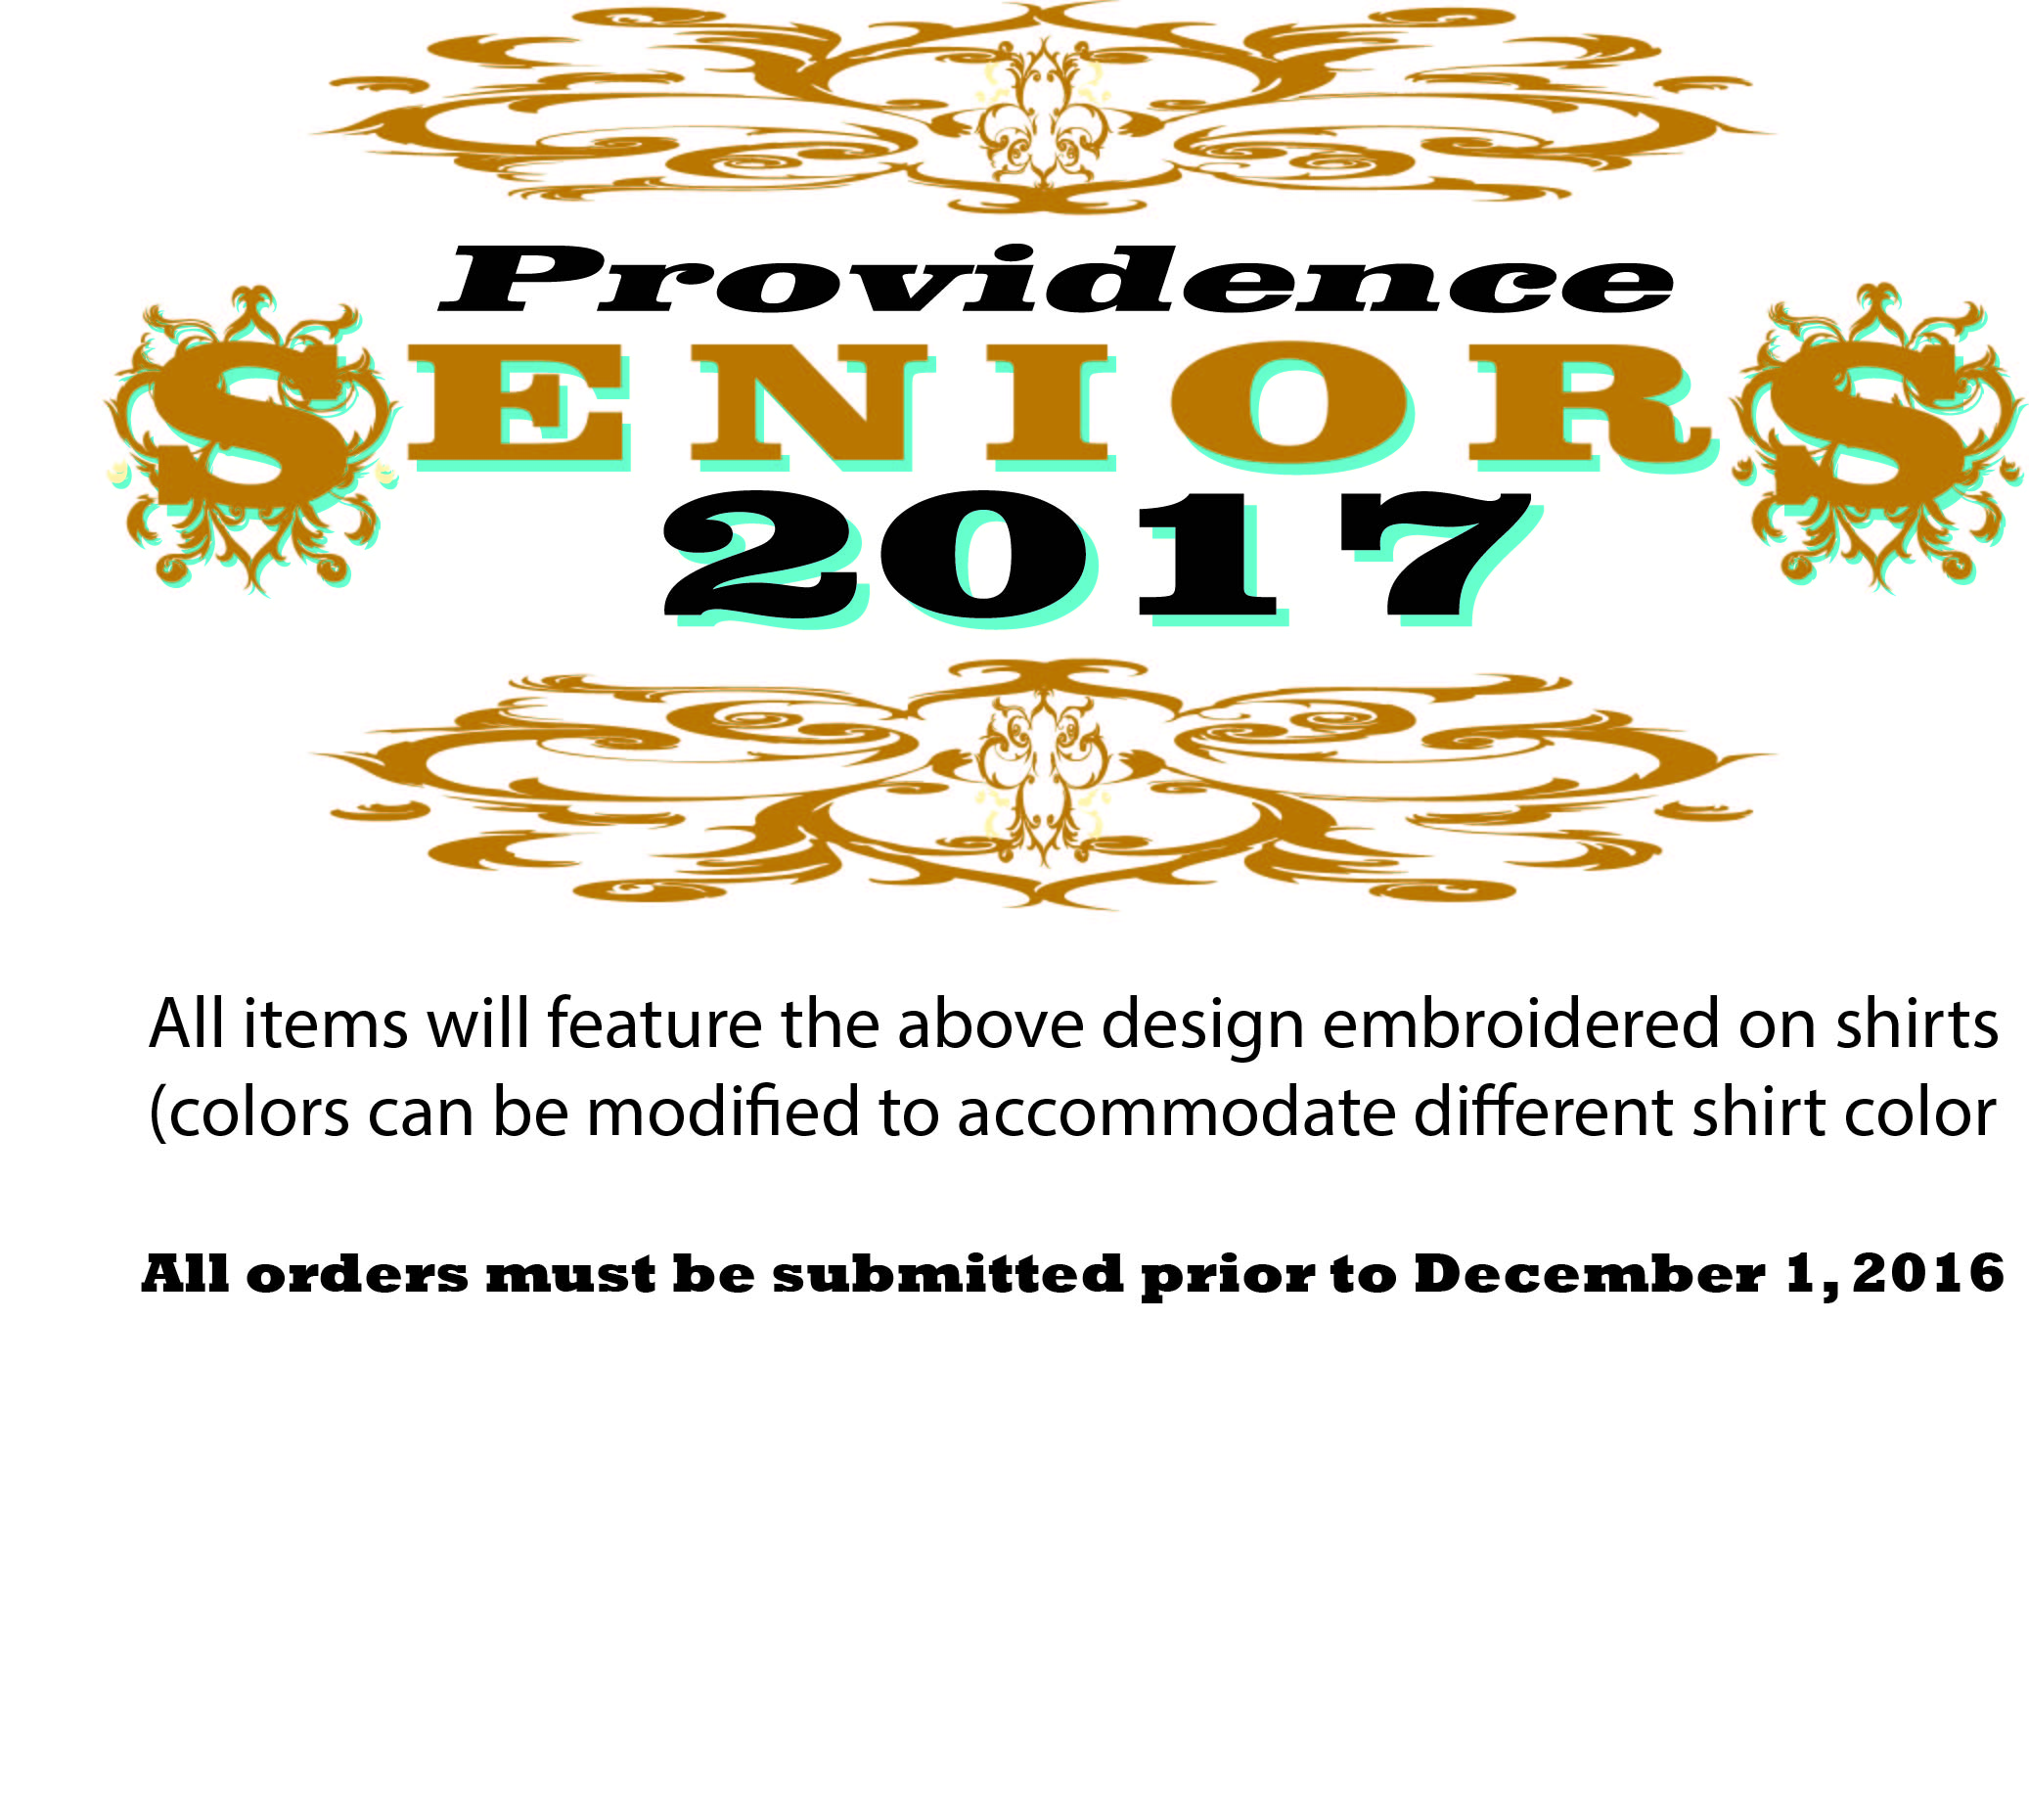 prov-seniors-website-header.jpg